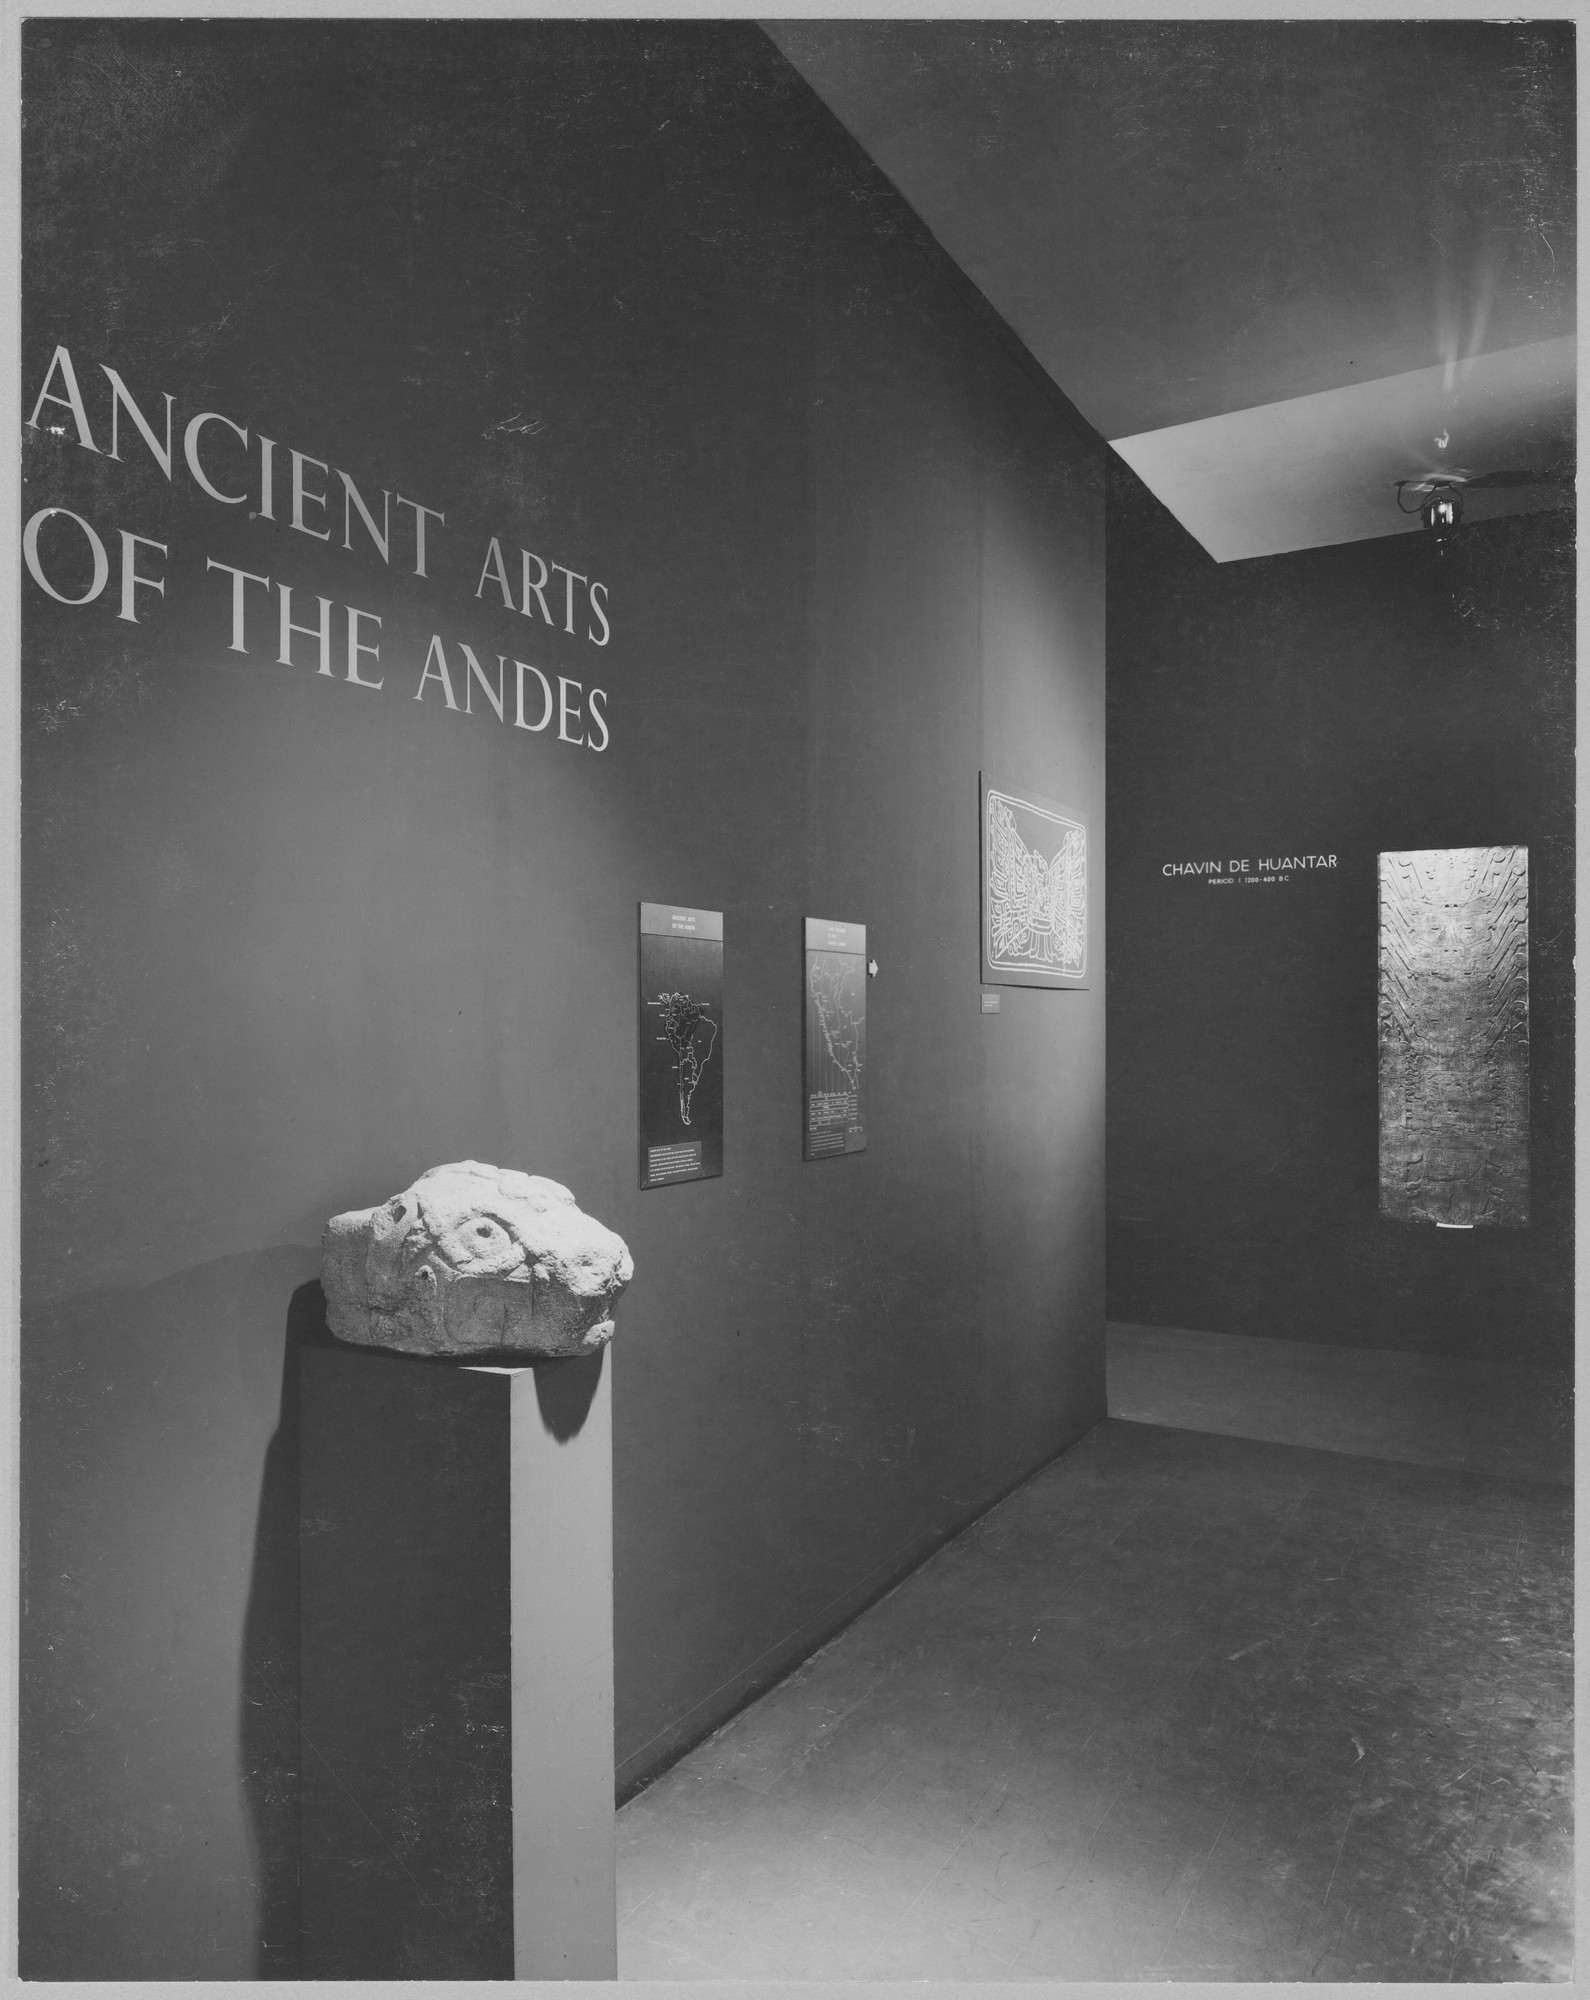 "Installation view of the exhibition, ""Ancient Arts of the Andes"" January 25, 1954–March 21, 1954. Photographic Archive. The Museum of Modern Art Archives, New York. IN550.1. Photograph by Alexandre Georges."